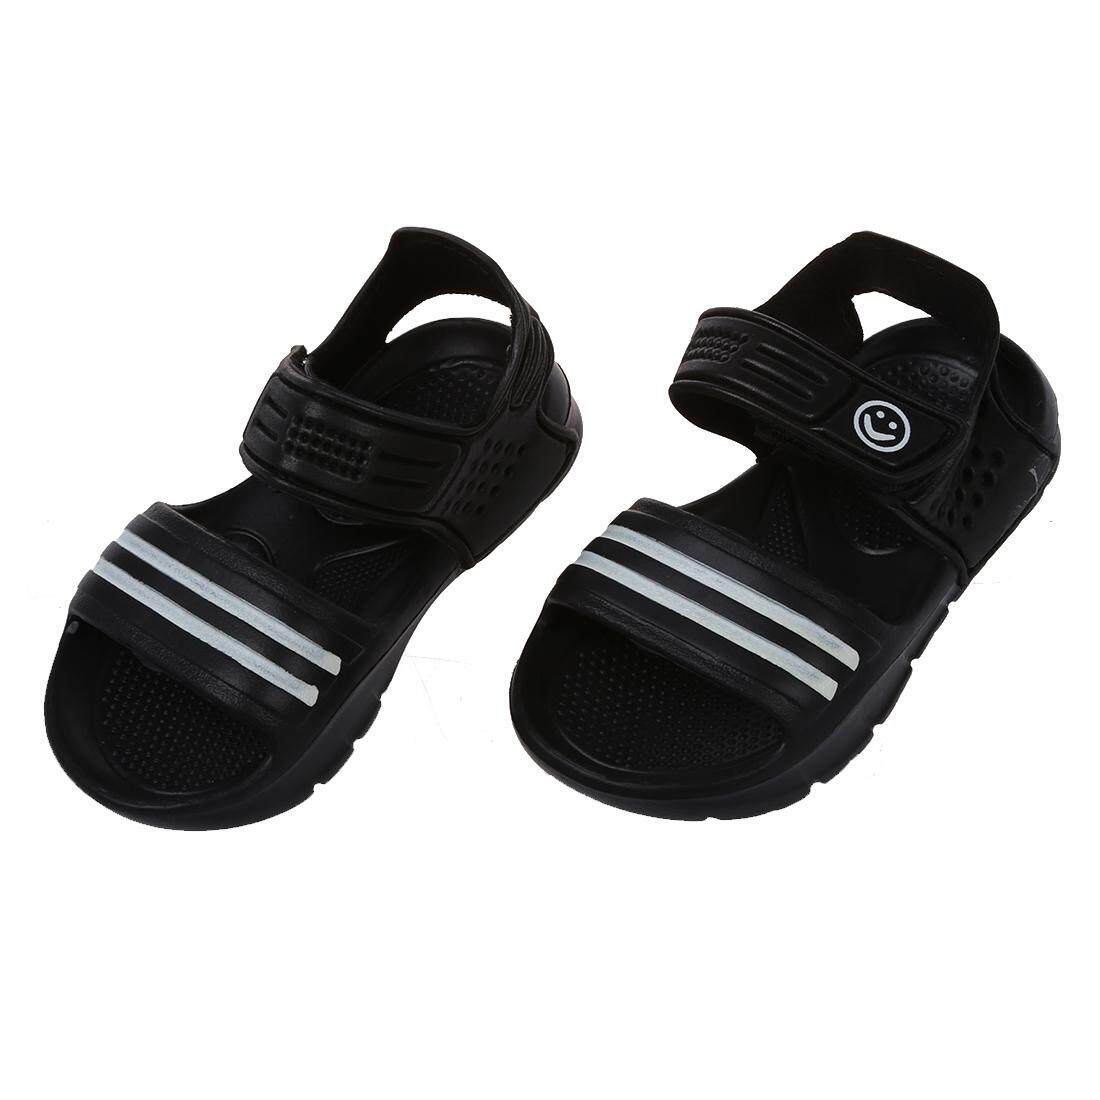 Fitur Dinielephant Black Summer Children Sandals Slip Resistant Wear Pollenzo On Trendy White Small Boy Casual Girls